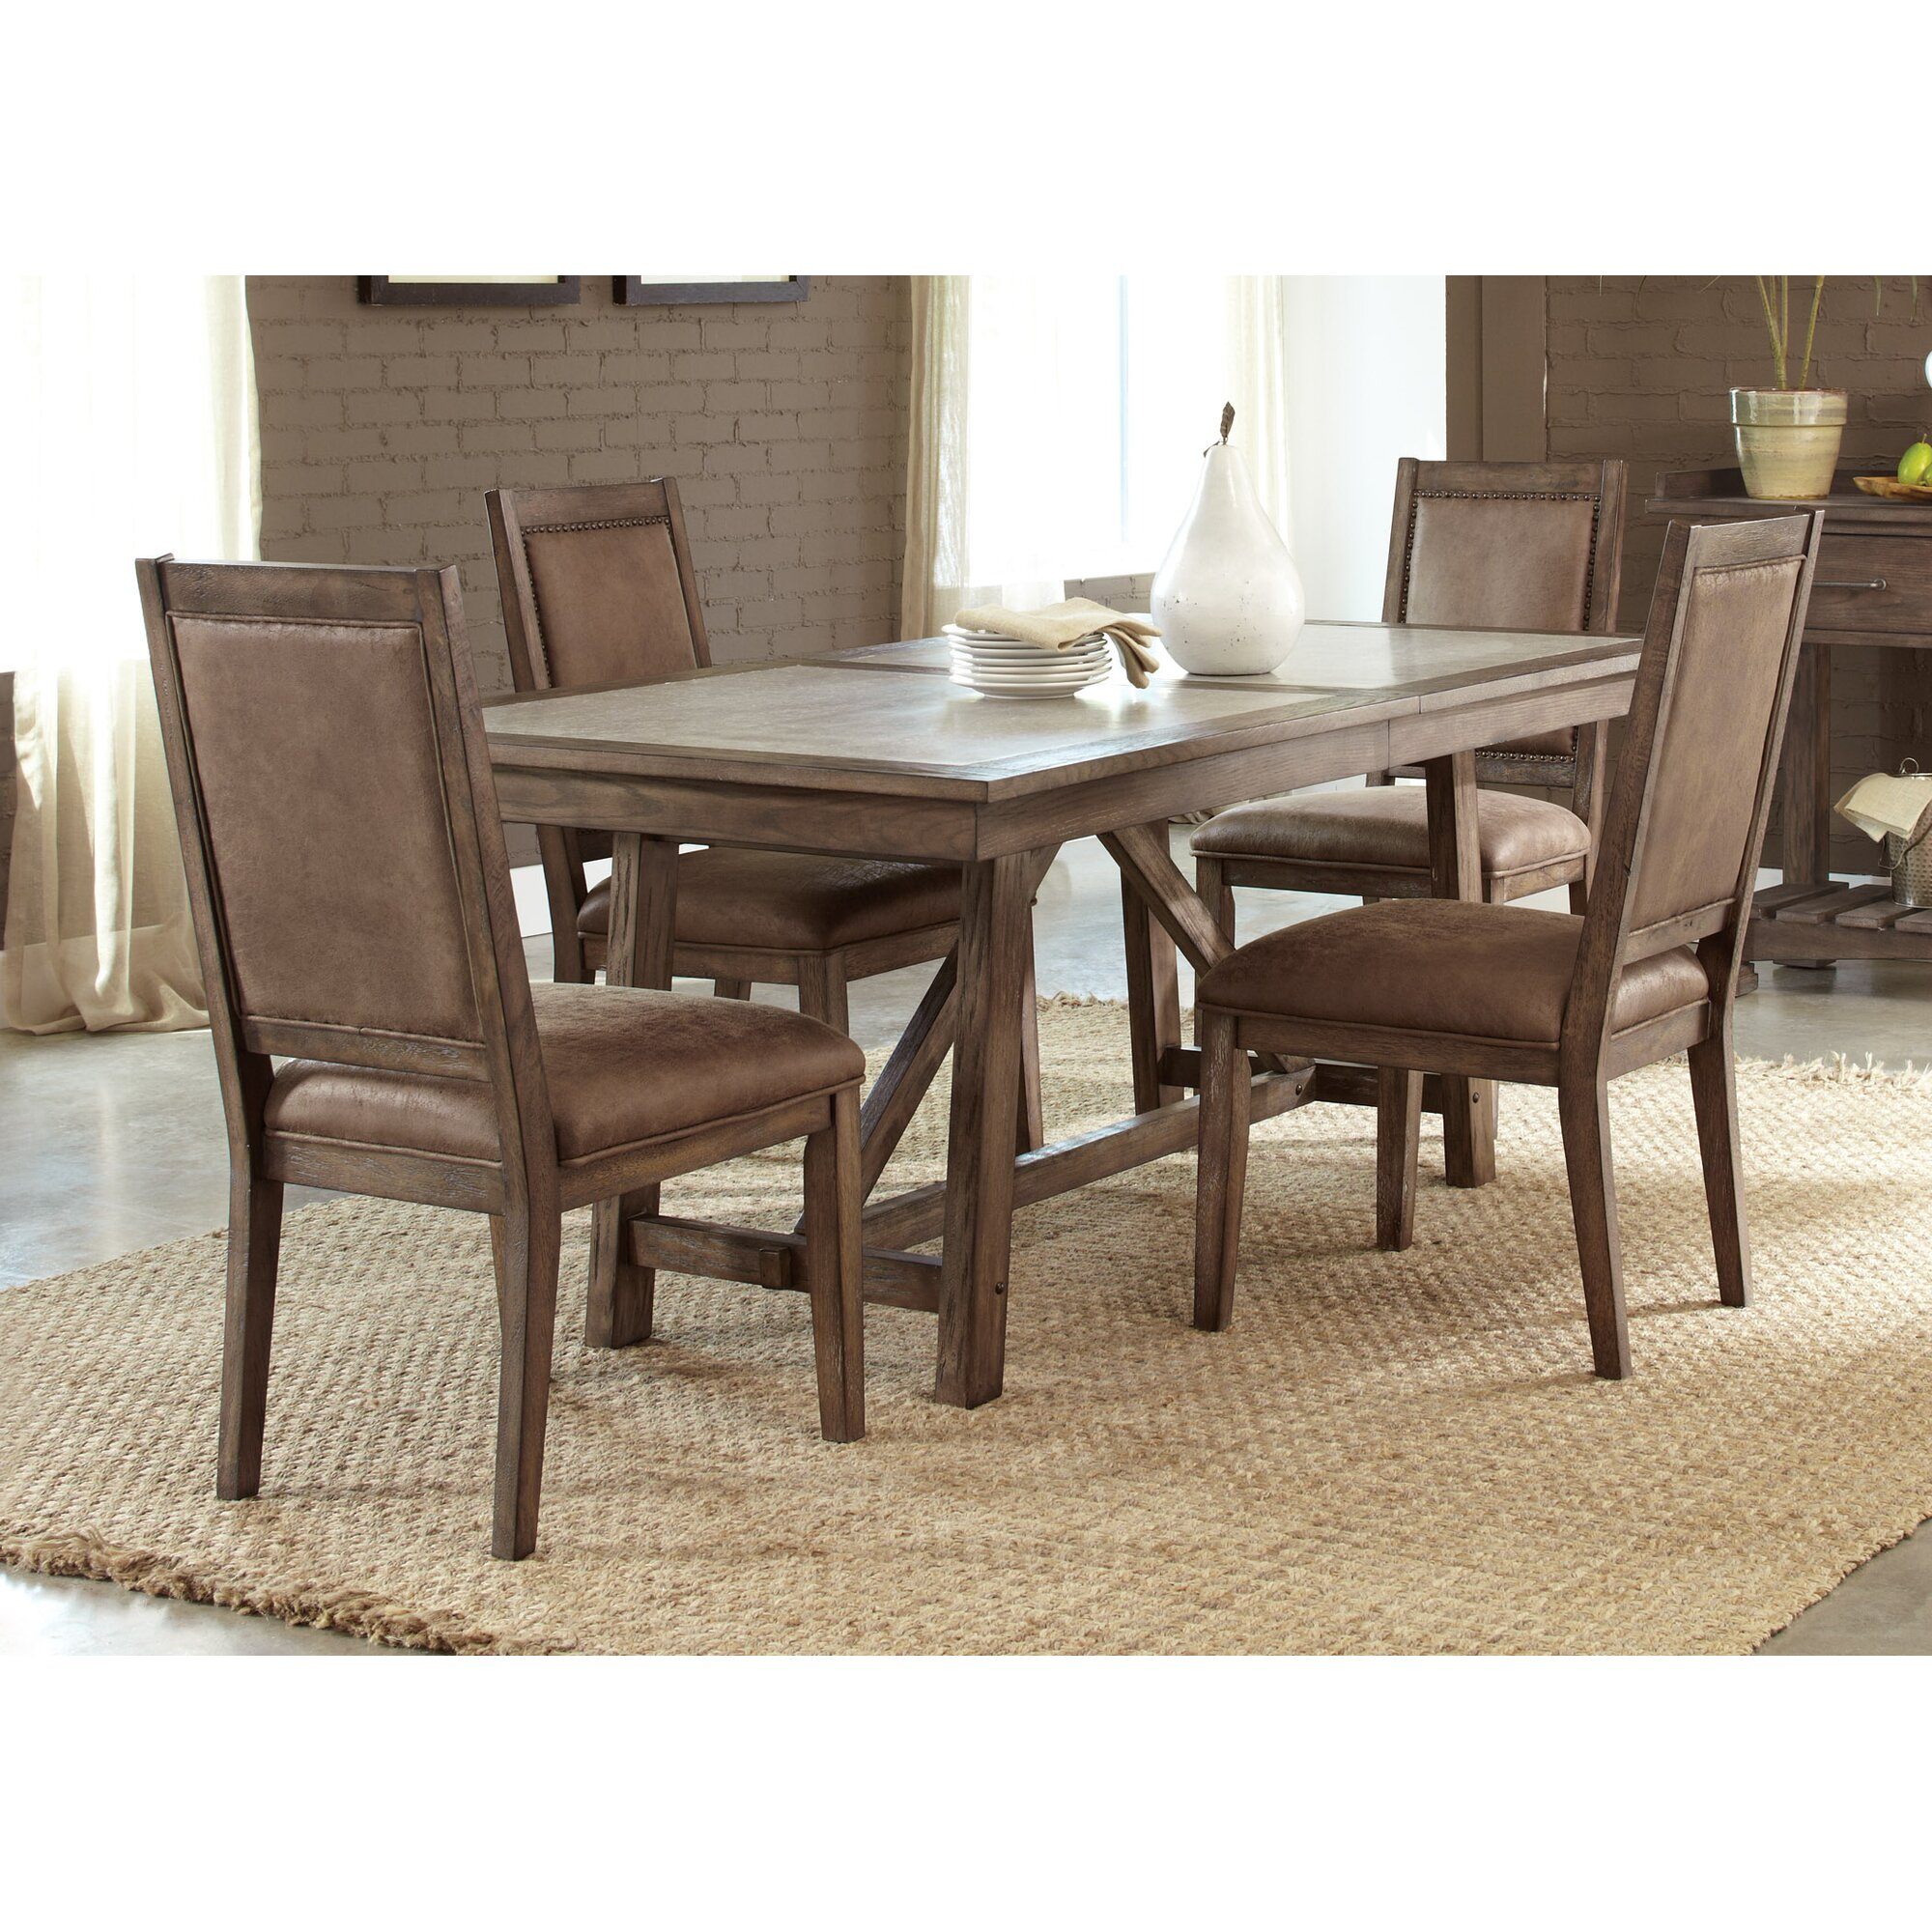 Liberty Furniture Stone Brook Trestle Dining Table & Reviews | Wayfair